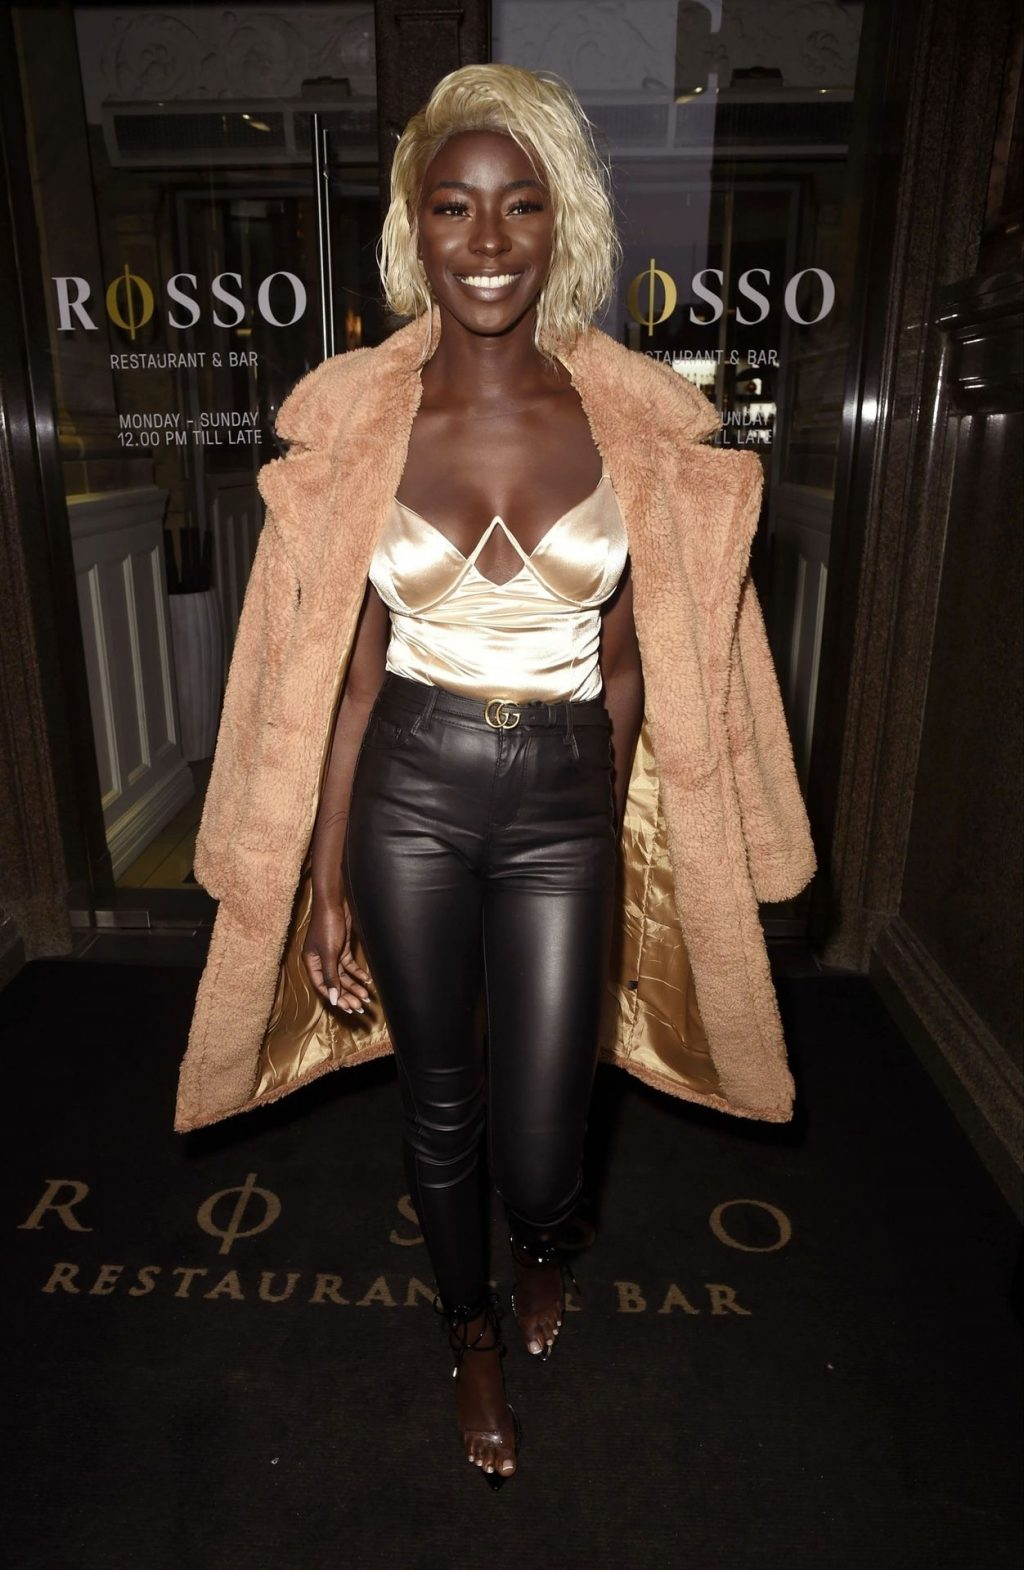 Priscilla Anyabu Looks Sexy at the Rosso Restaurant in Manchester (13 Photos)